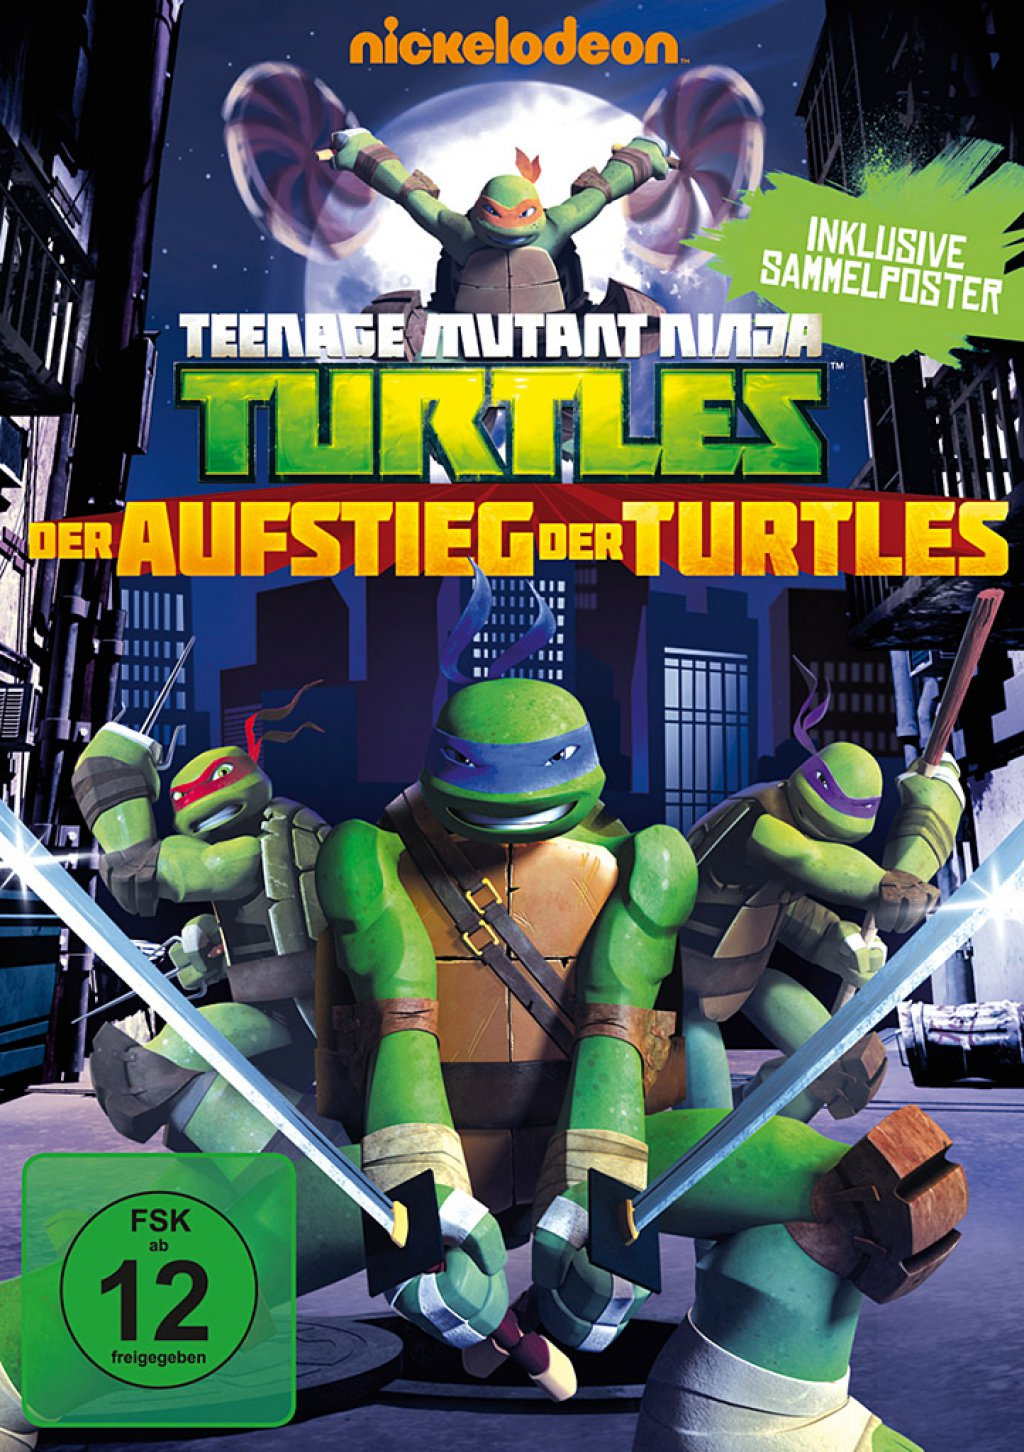 Teenage Mutant Ninja Turtles - Der Aufstieg der Turtles (DVD)